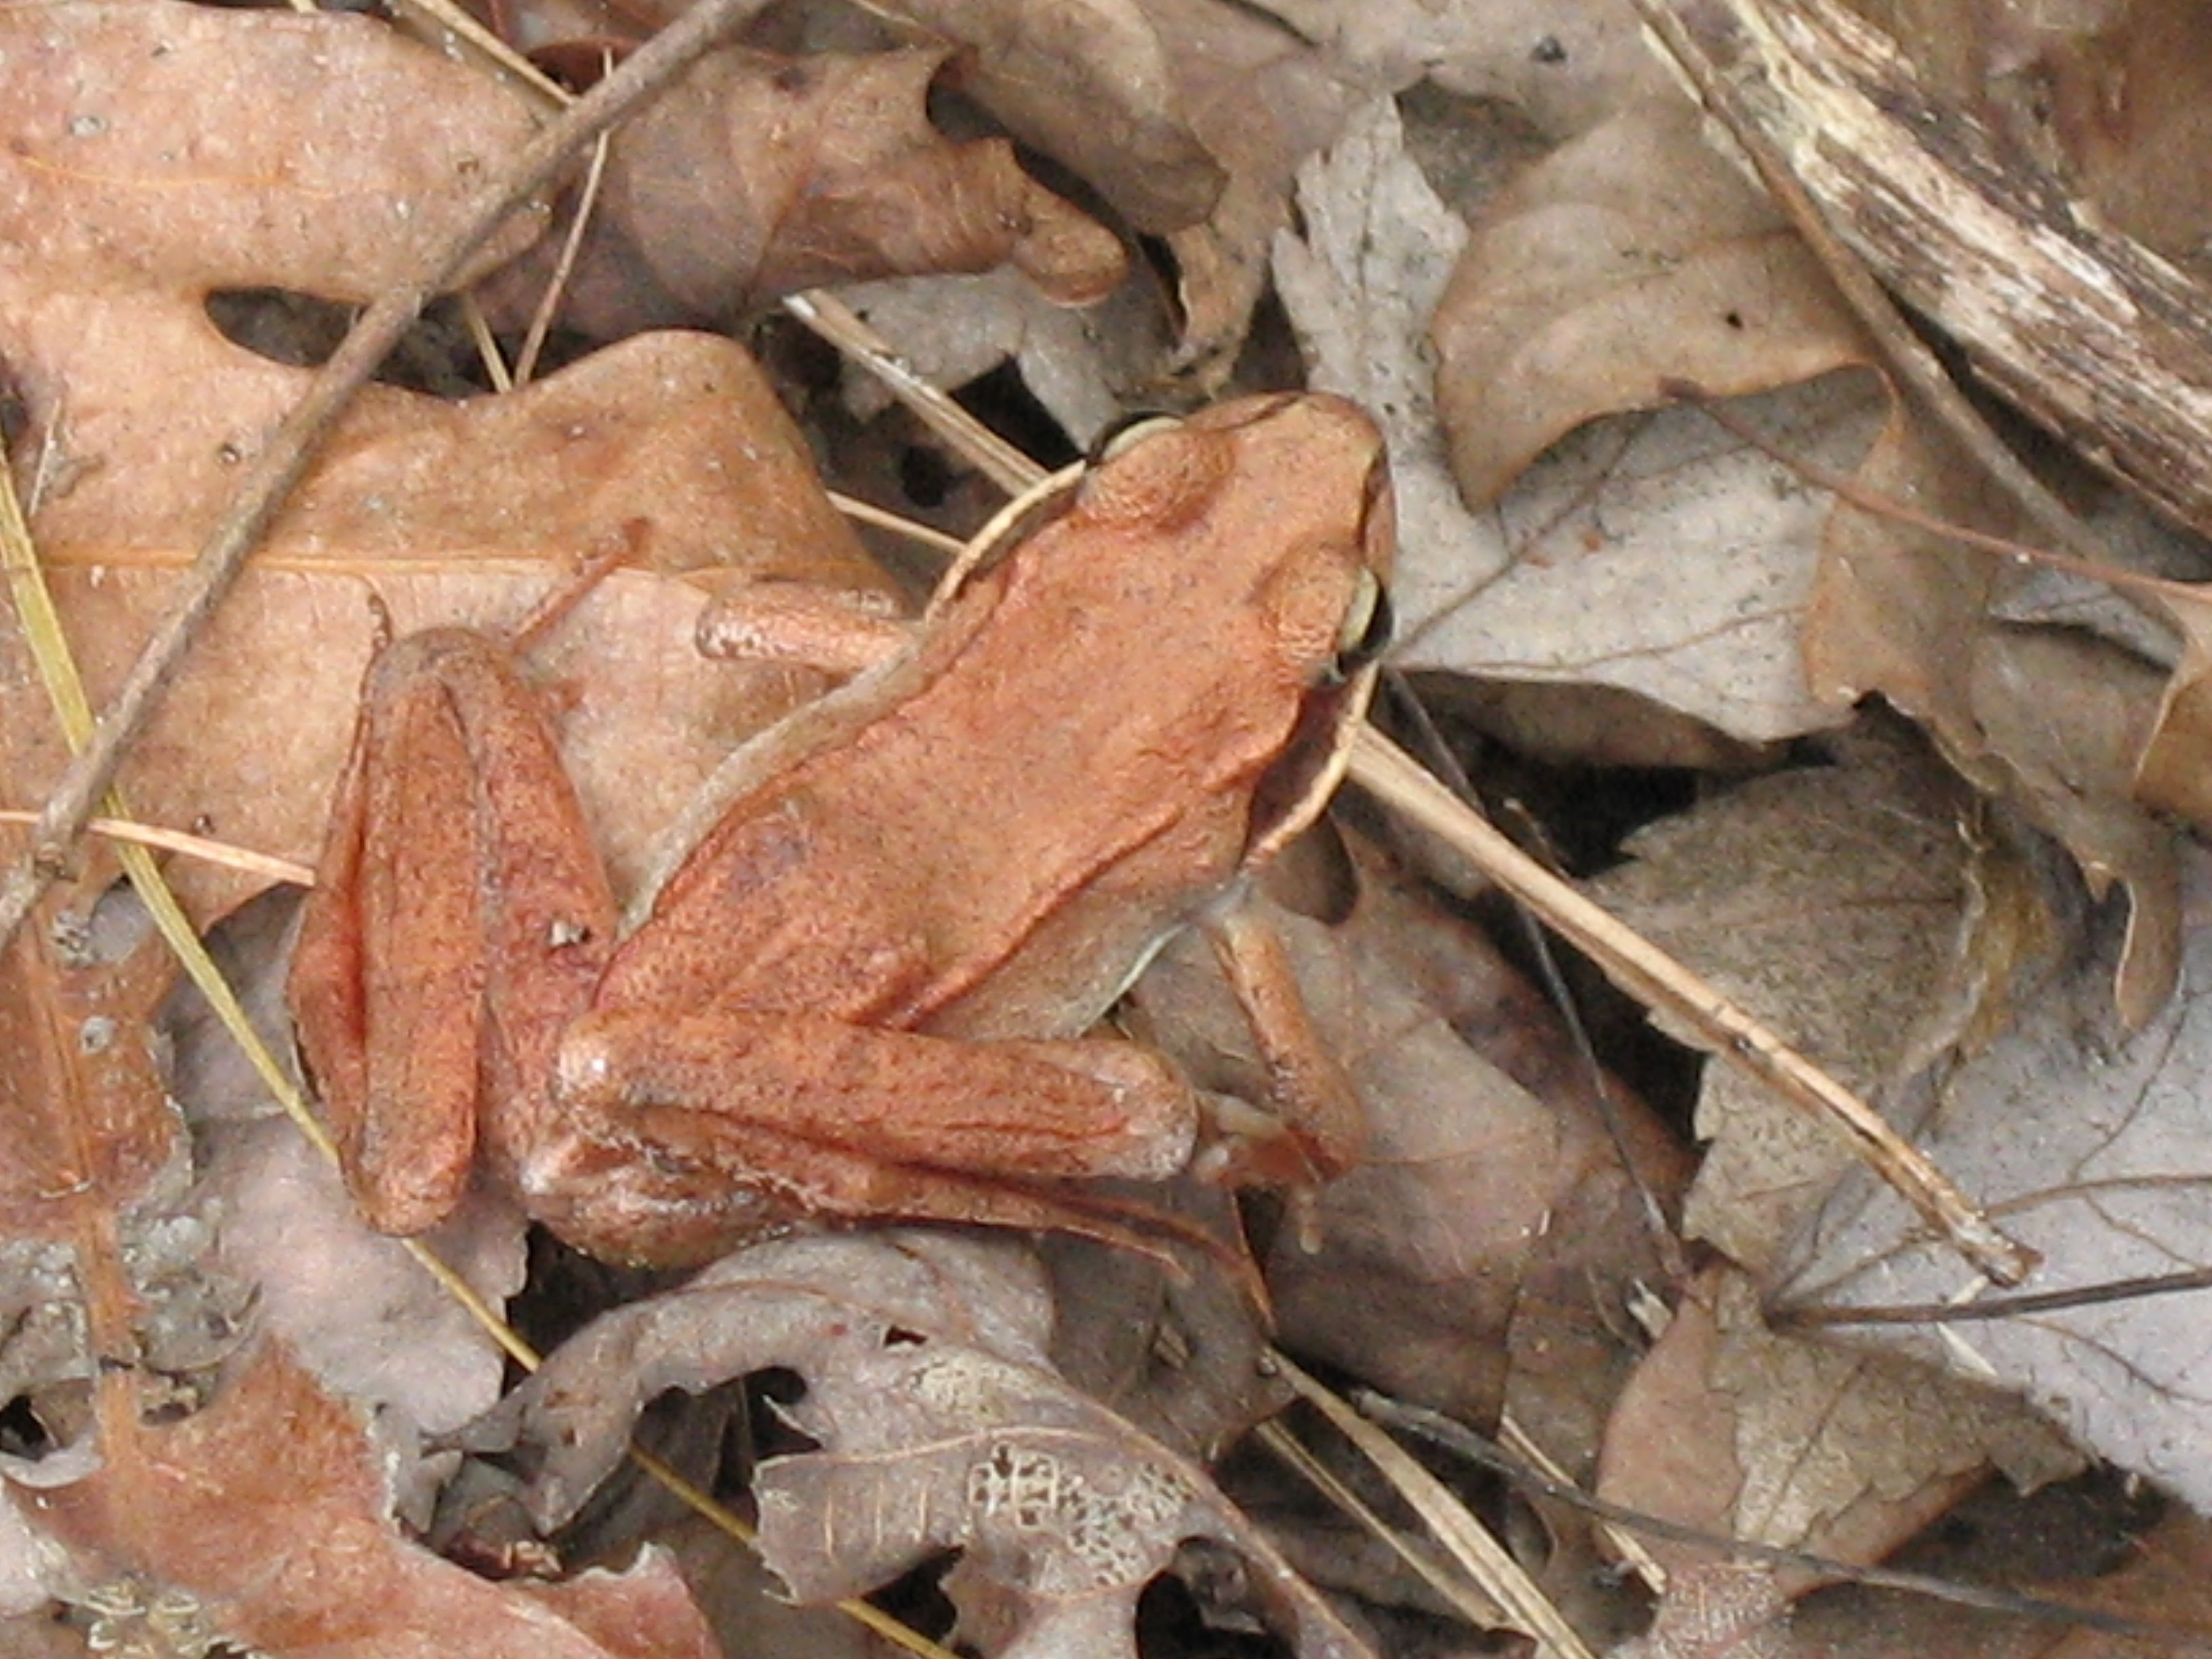 Looking down on a small orange-brown frog, well camouflaged against a layer of dried oak leaves.